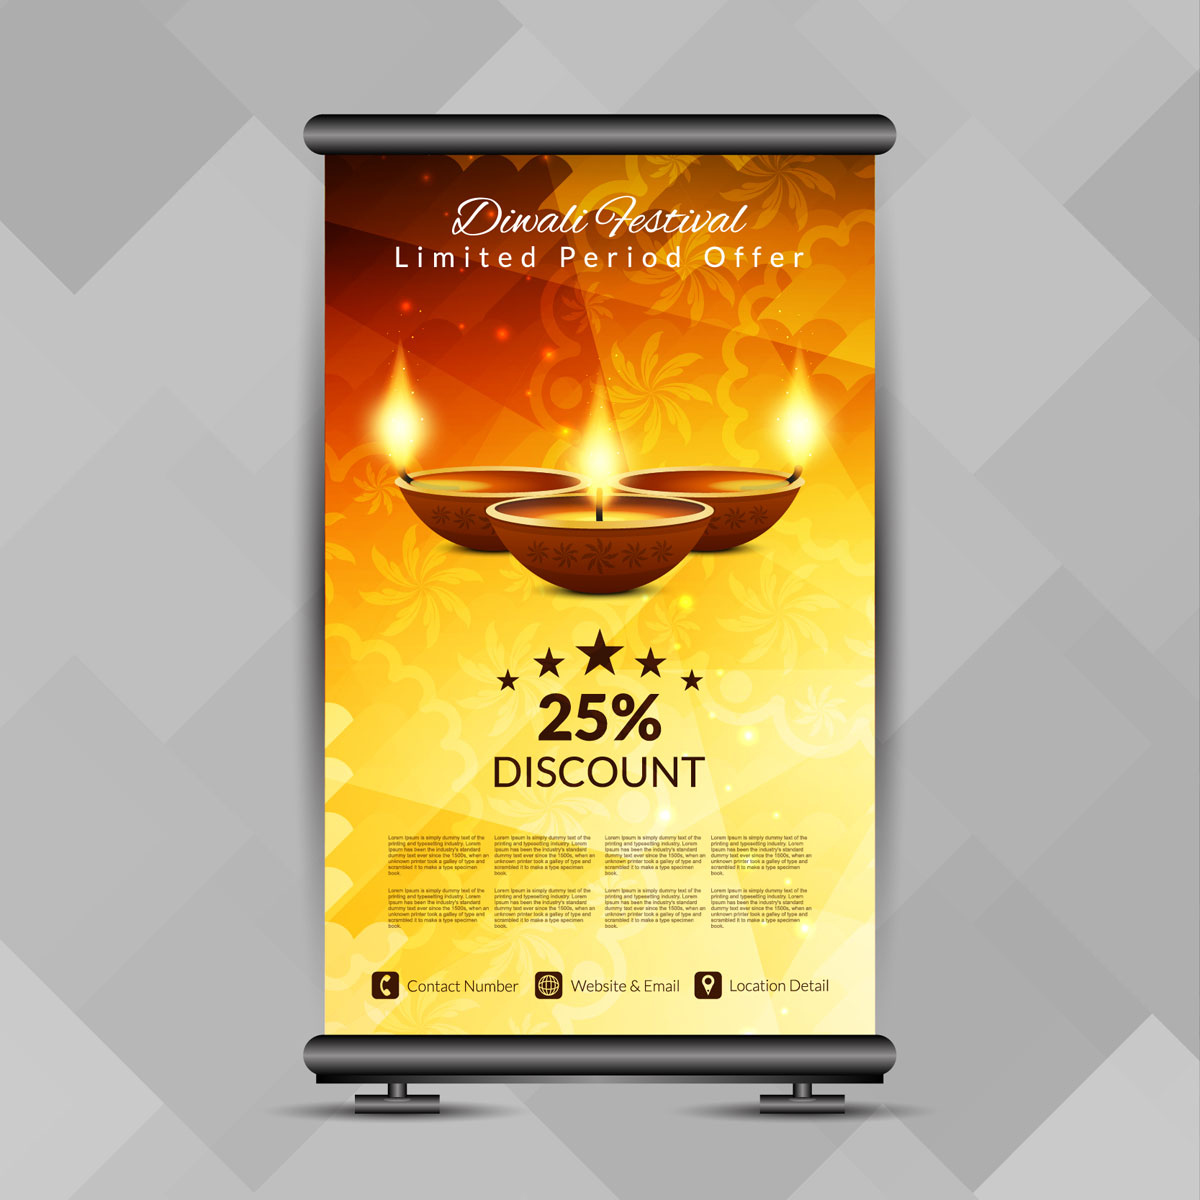 One of my favorite parts of working for benchmark email is the worldwide focus that this company takes. Abstract Stylish Happy Diwali Roll Up Banner Design Template 251476 Vector Art At Vecteezy